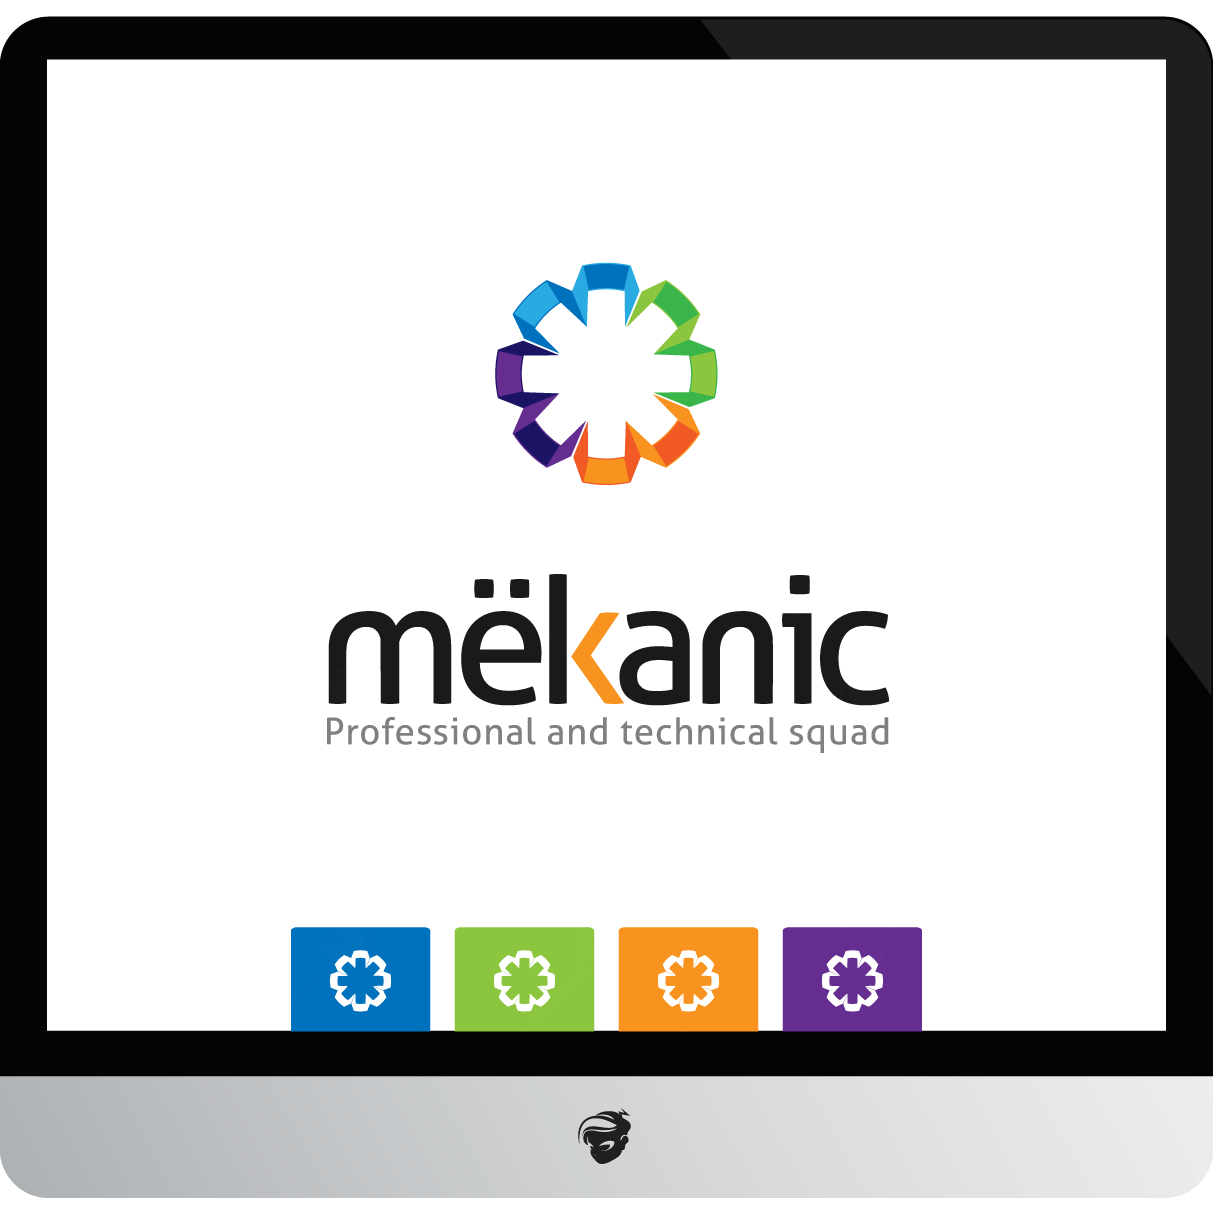 Logo Design by zesthar - Entry No. 93 in the Logo Design Contest Creative Logo Design for MËKANIC - Professional and technical squad.